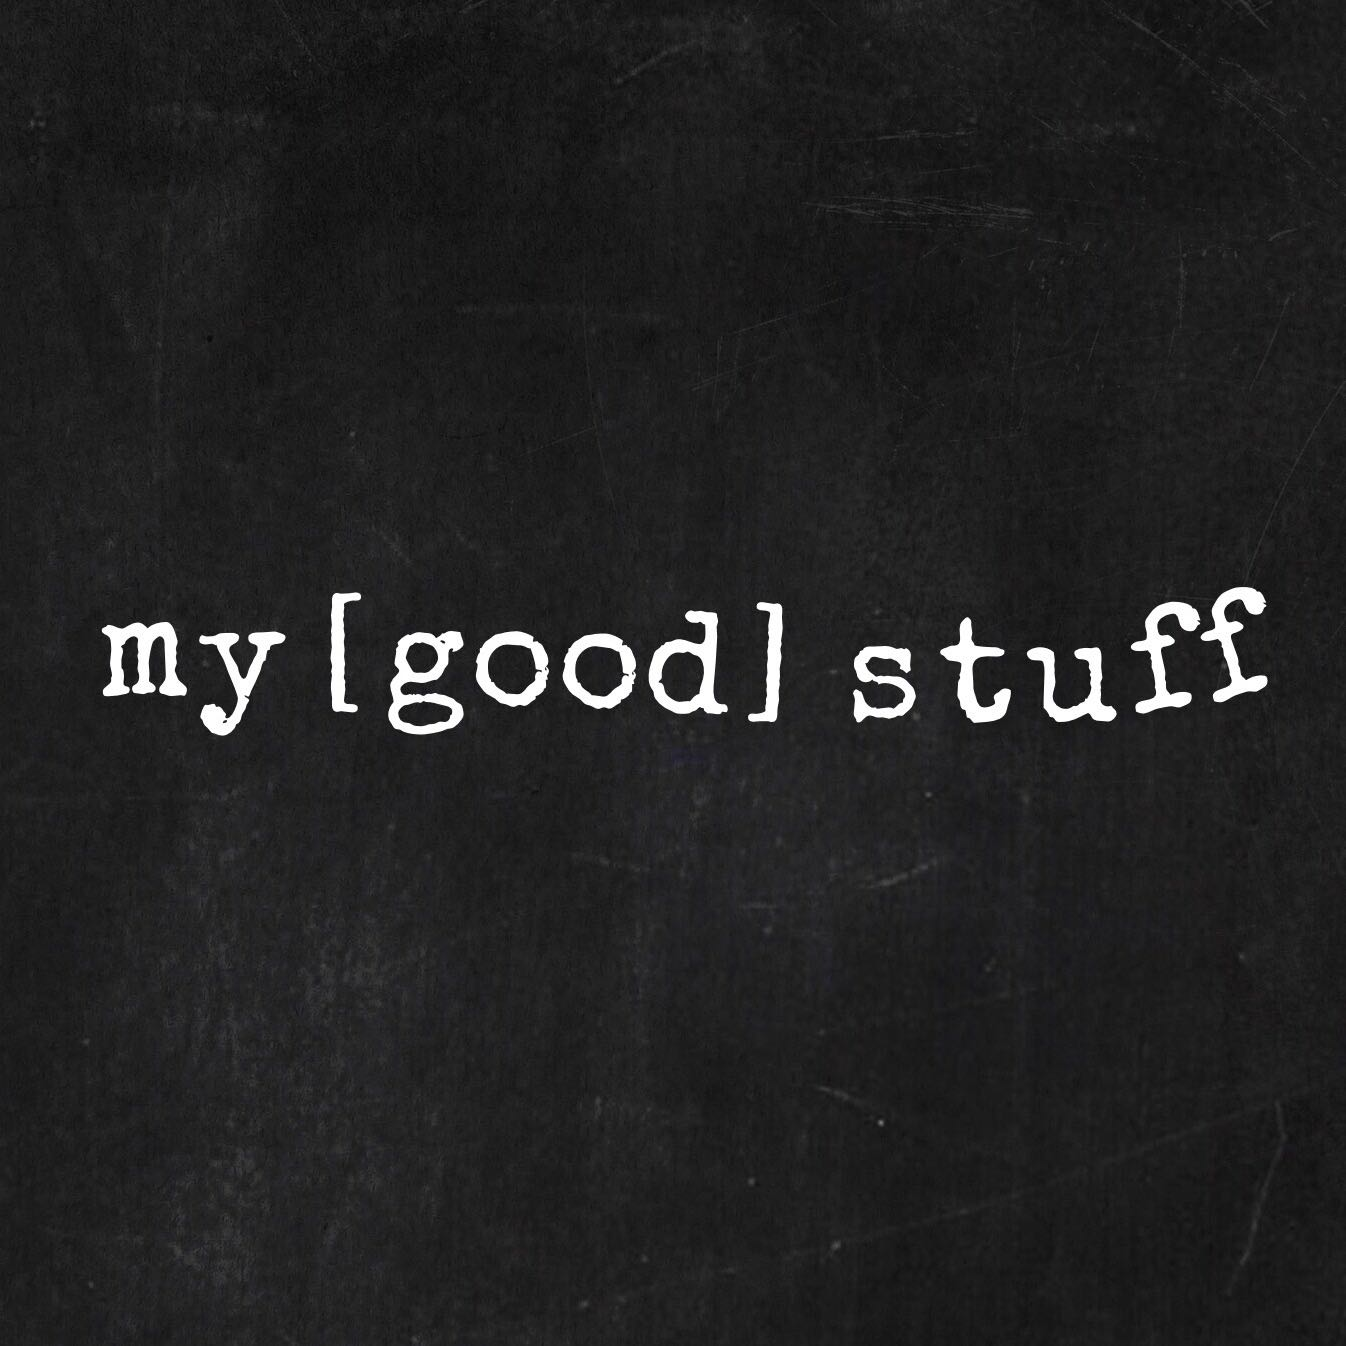 my.good.stuff